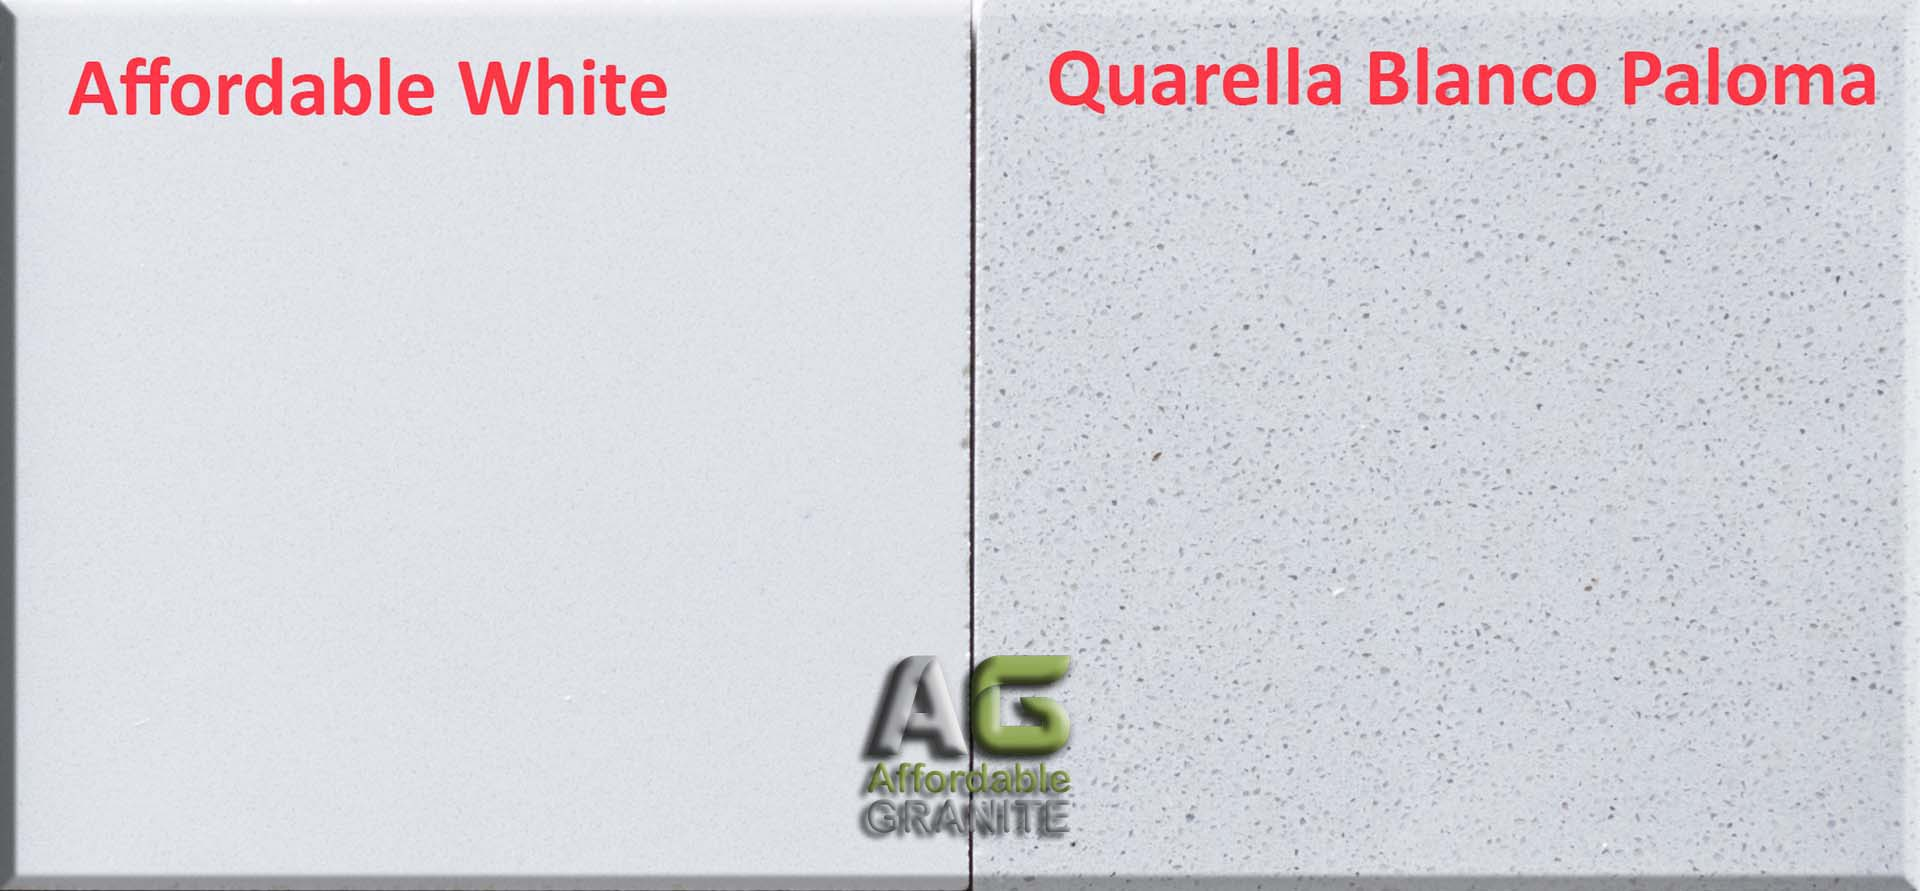 white stock quartz blanco paloma affordable white quartz worktops